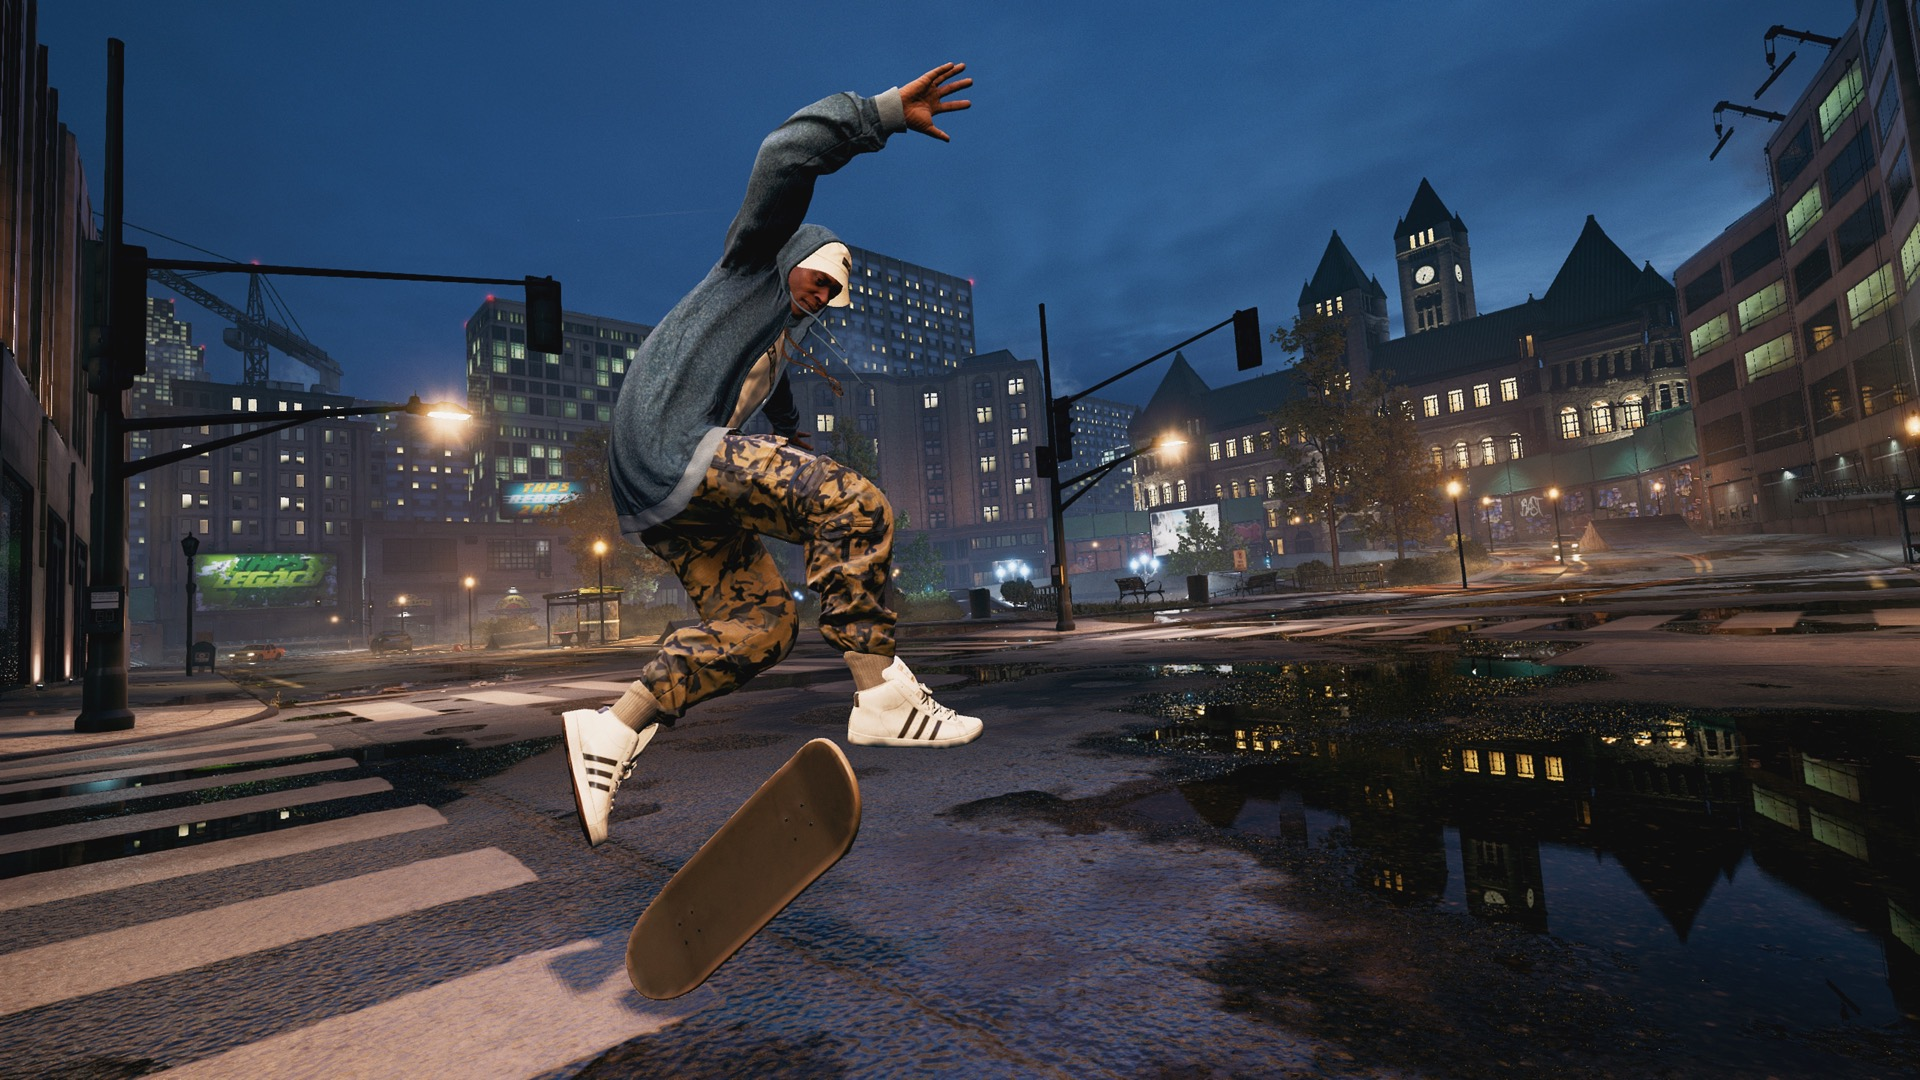 New Tony Hawk's Pro Skater 1 + 2 Characters Revealed